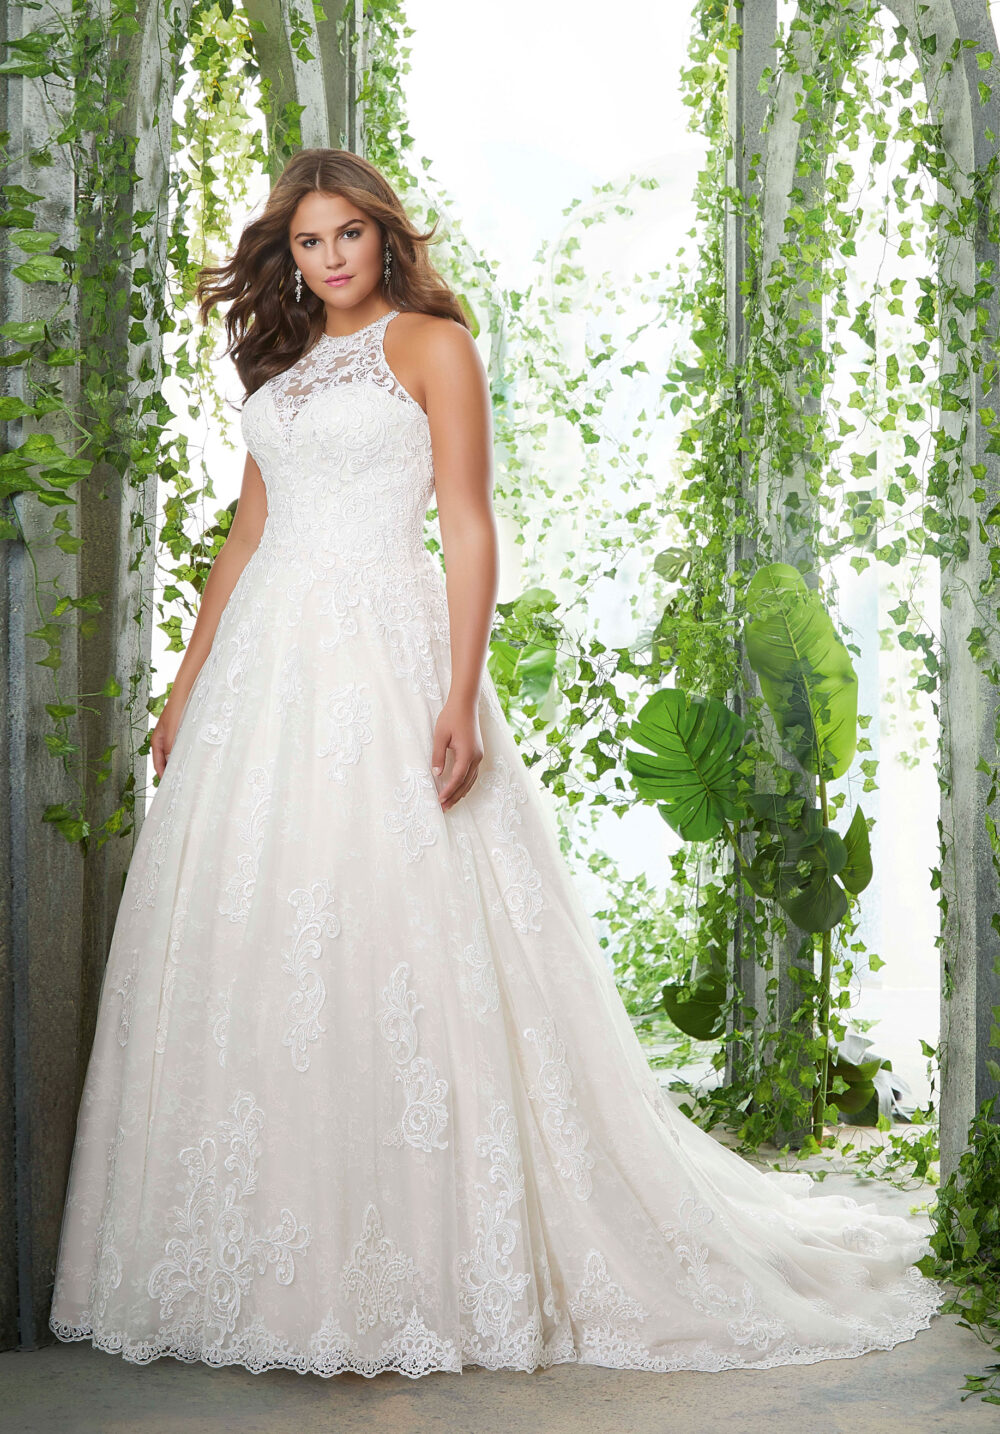 23 Best Wedding Dresses for Curvy Ladies for 2019 - Royal ...